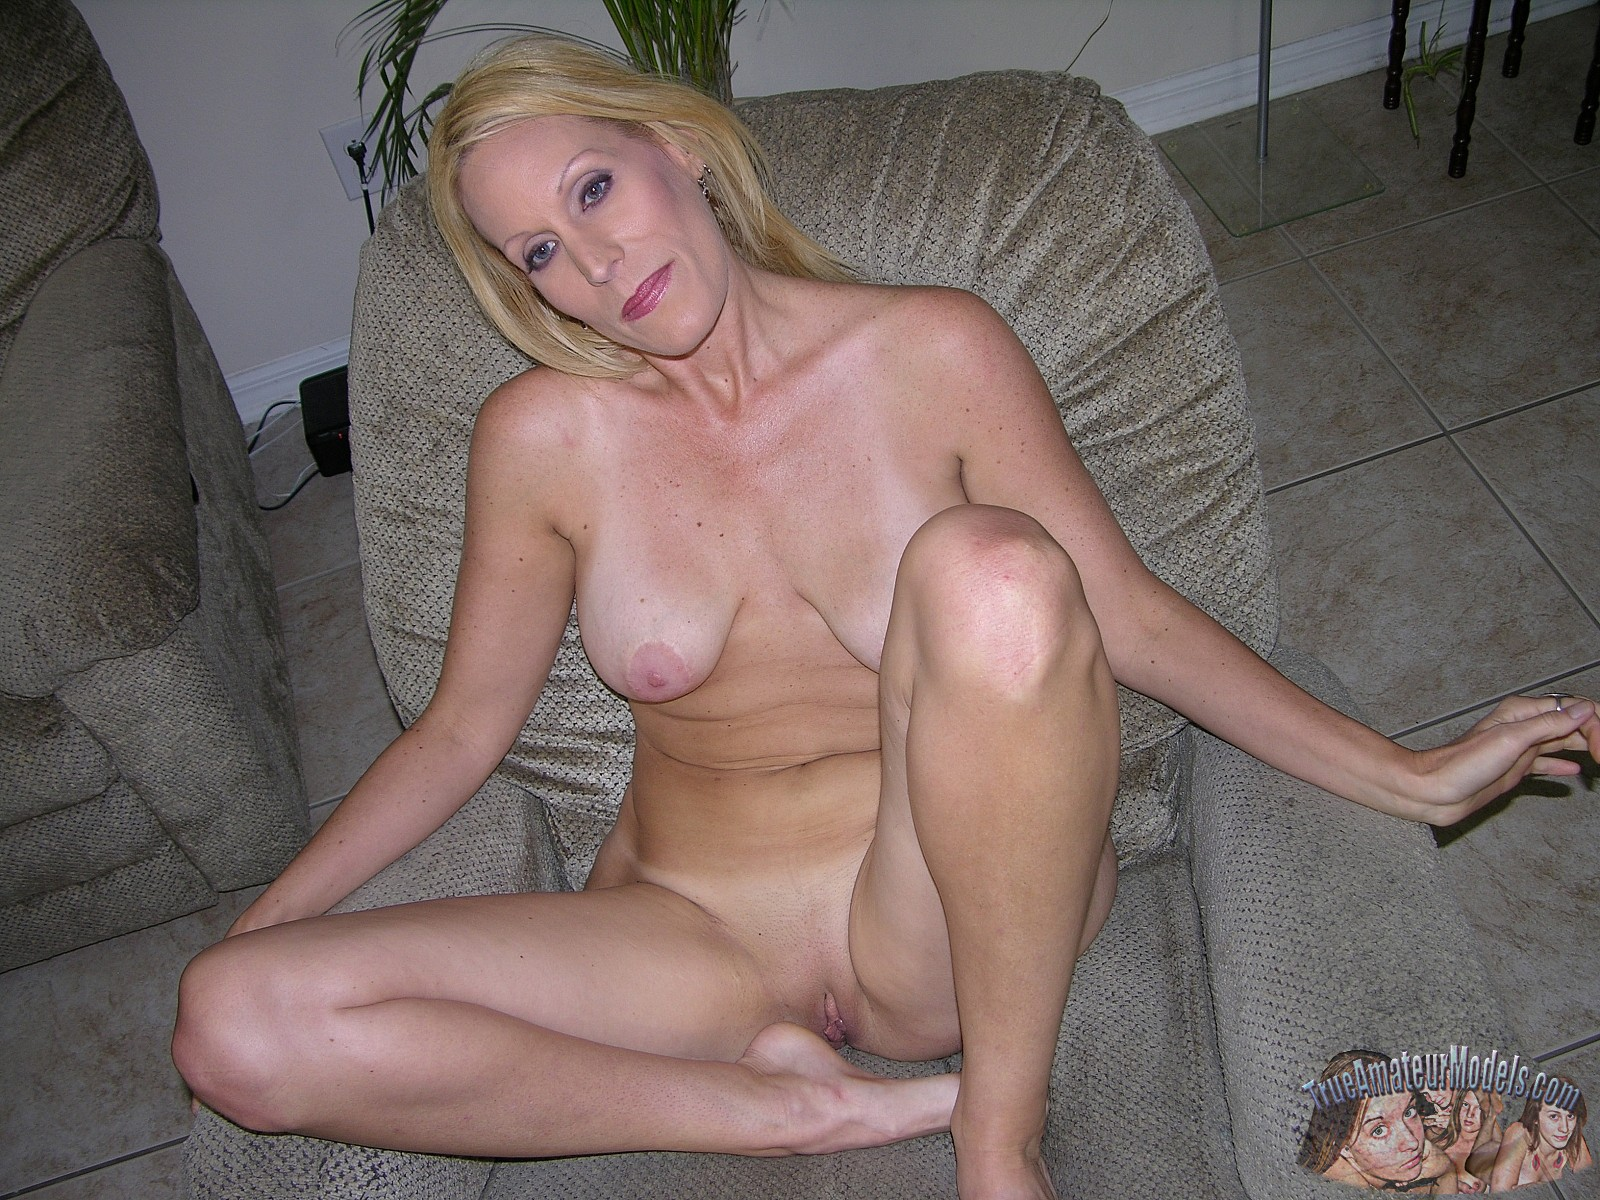 Consider, amateur blonde milf spread perhaps shall